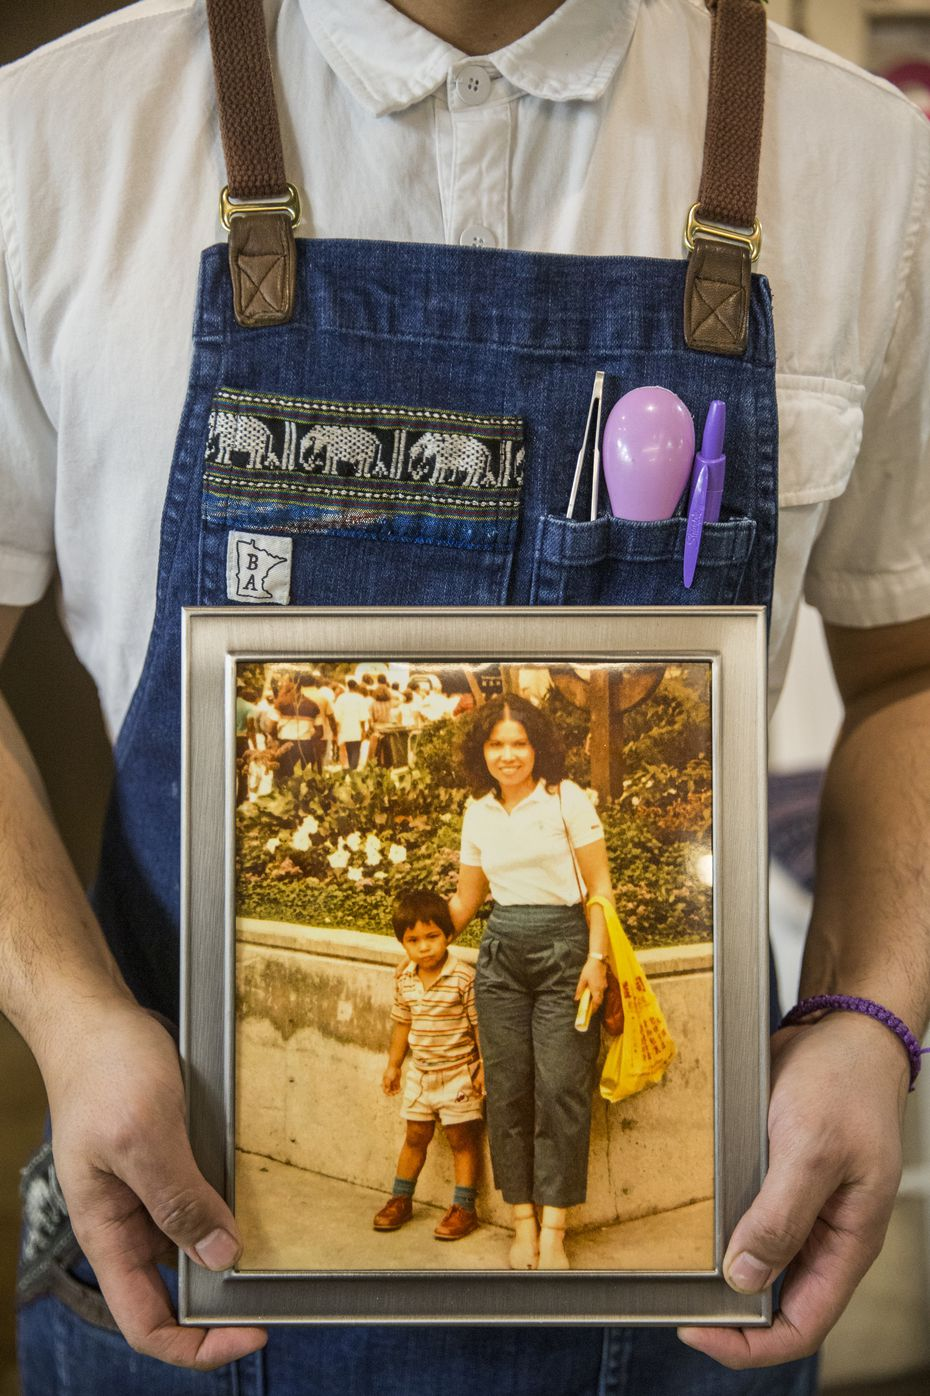 Chef Donny Sirisavath holds a photo of he and his mother Phaysane Sirisavath, who died of cancer. Sirisavath's restaurants Khao Noodle Shop and Khao Gang are inspired by her cooking.